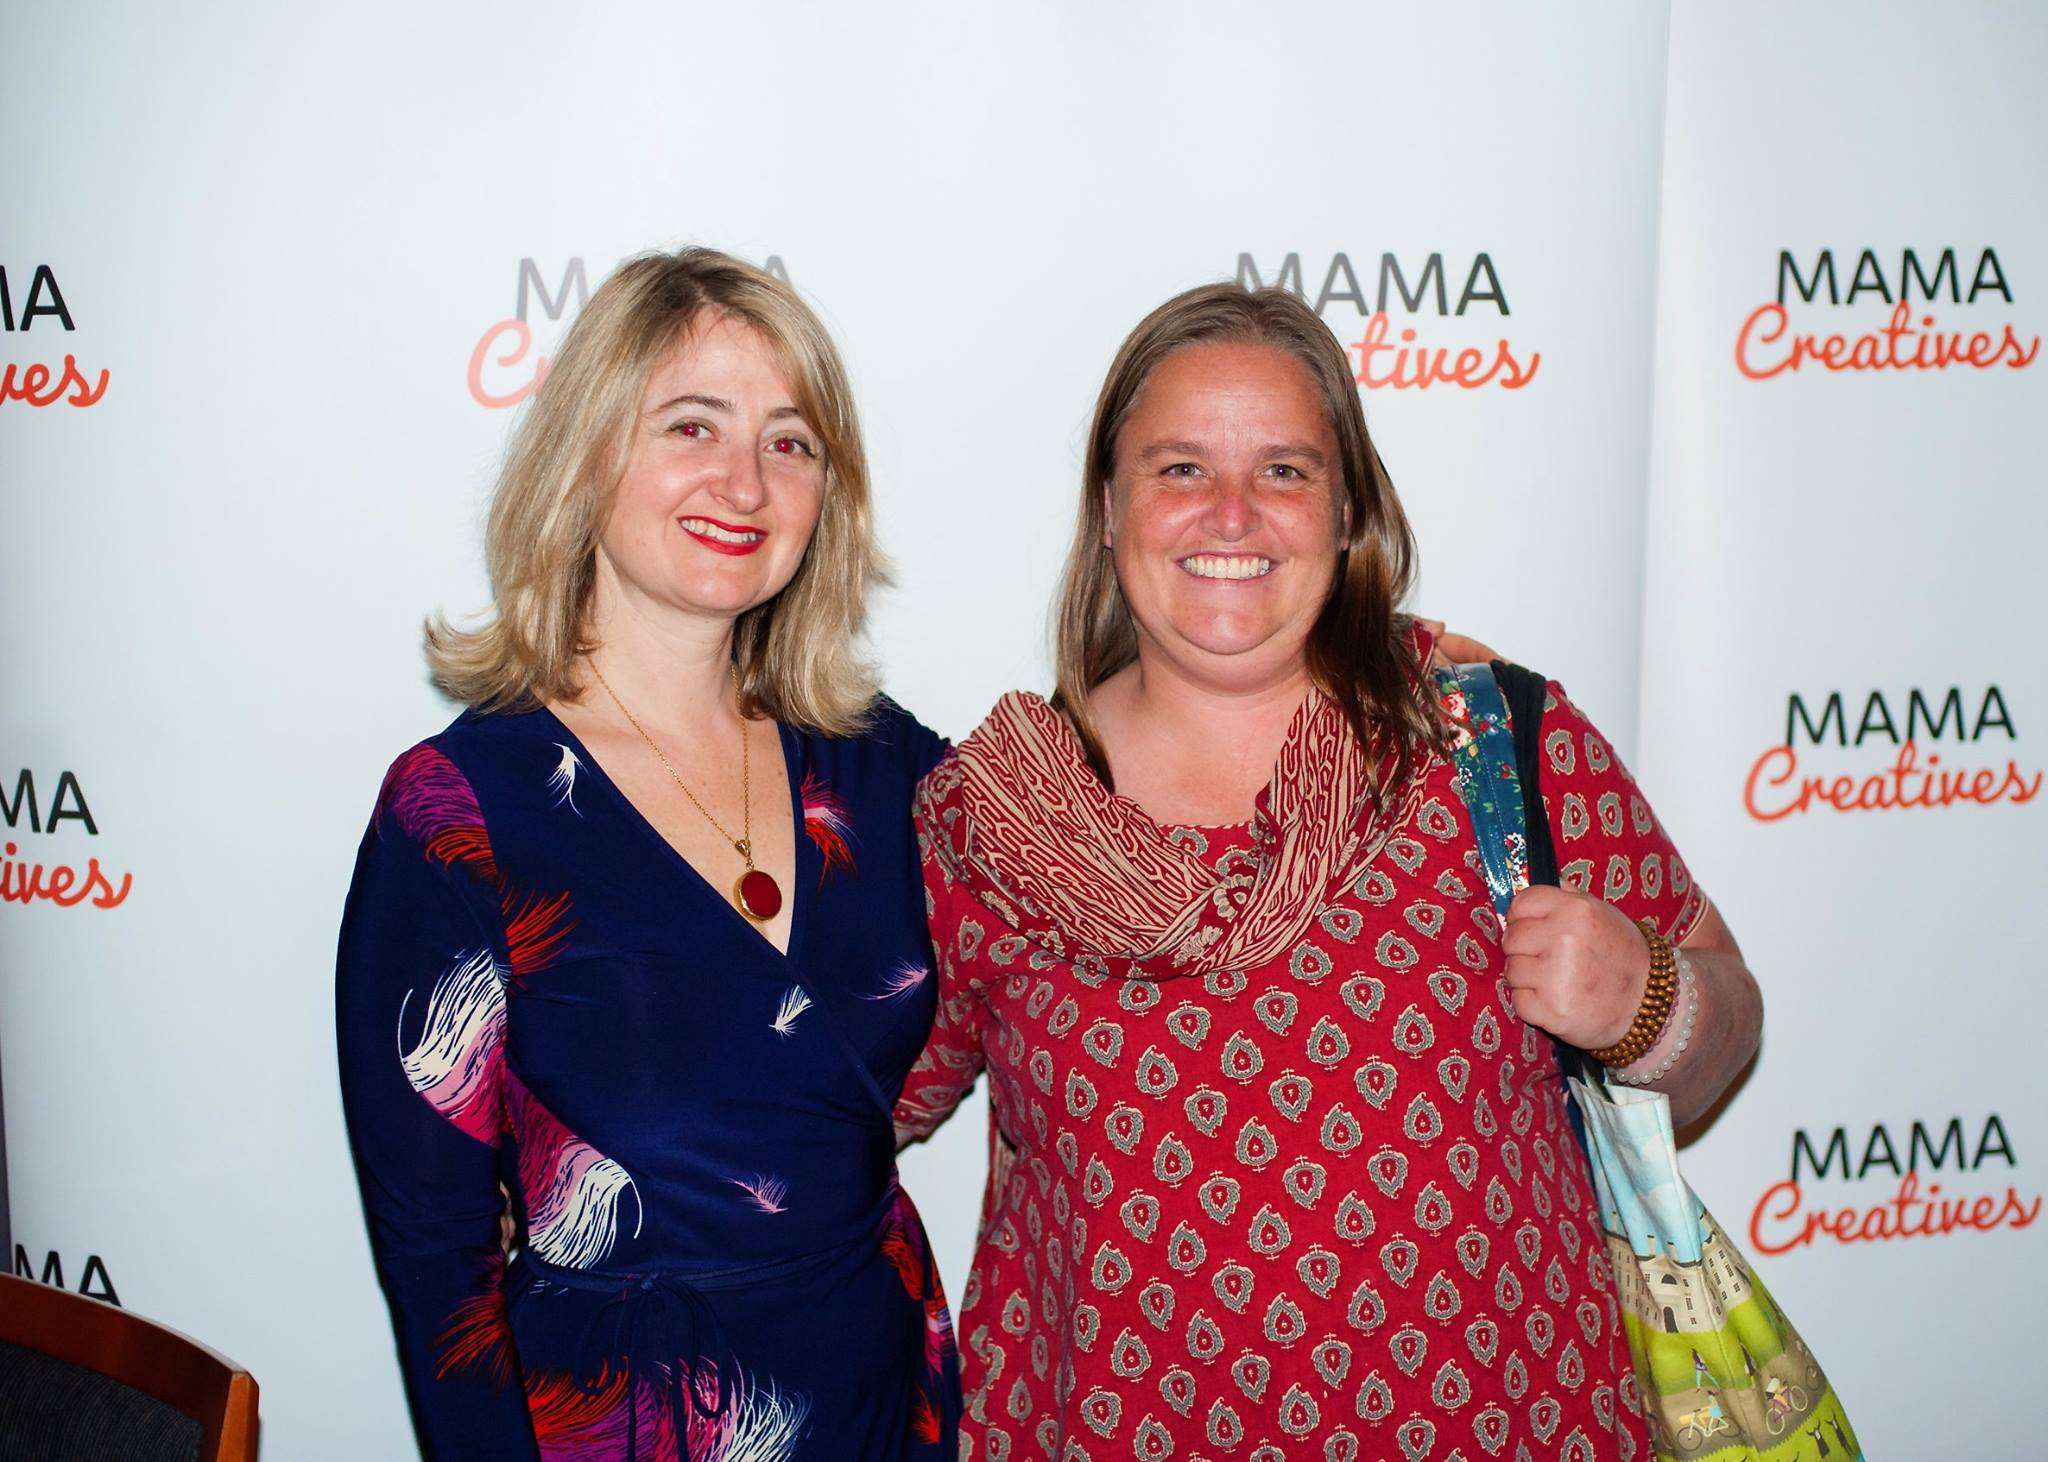 With the very inspiring Bec Ordish, founder of the Mitrataa Foundation, visitng Sydney from Nepal, at our Mama Creatives Evening Talk featuring the fabulous Pauline Nguyen Speaks, writer, restauranteur, spiritual entrepreneur & mentor.